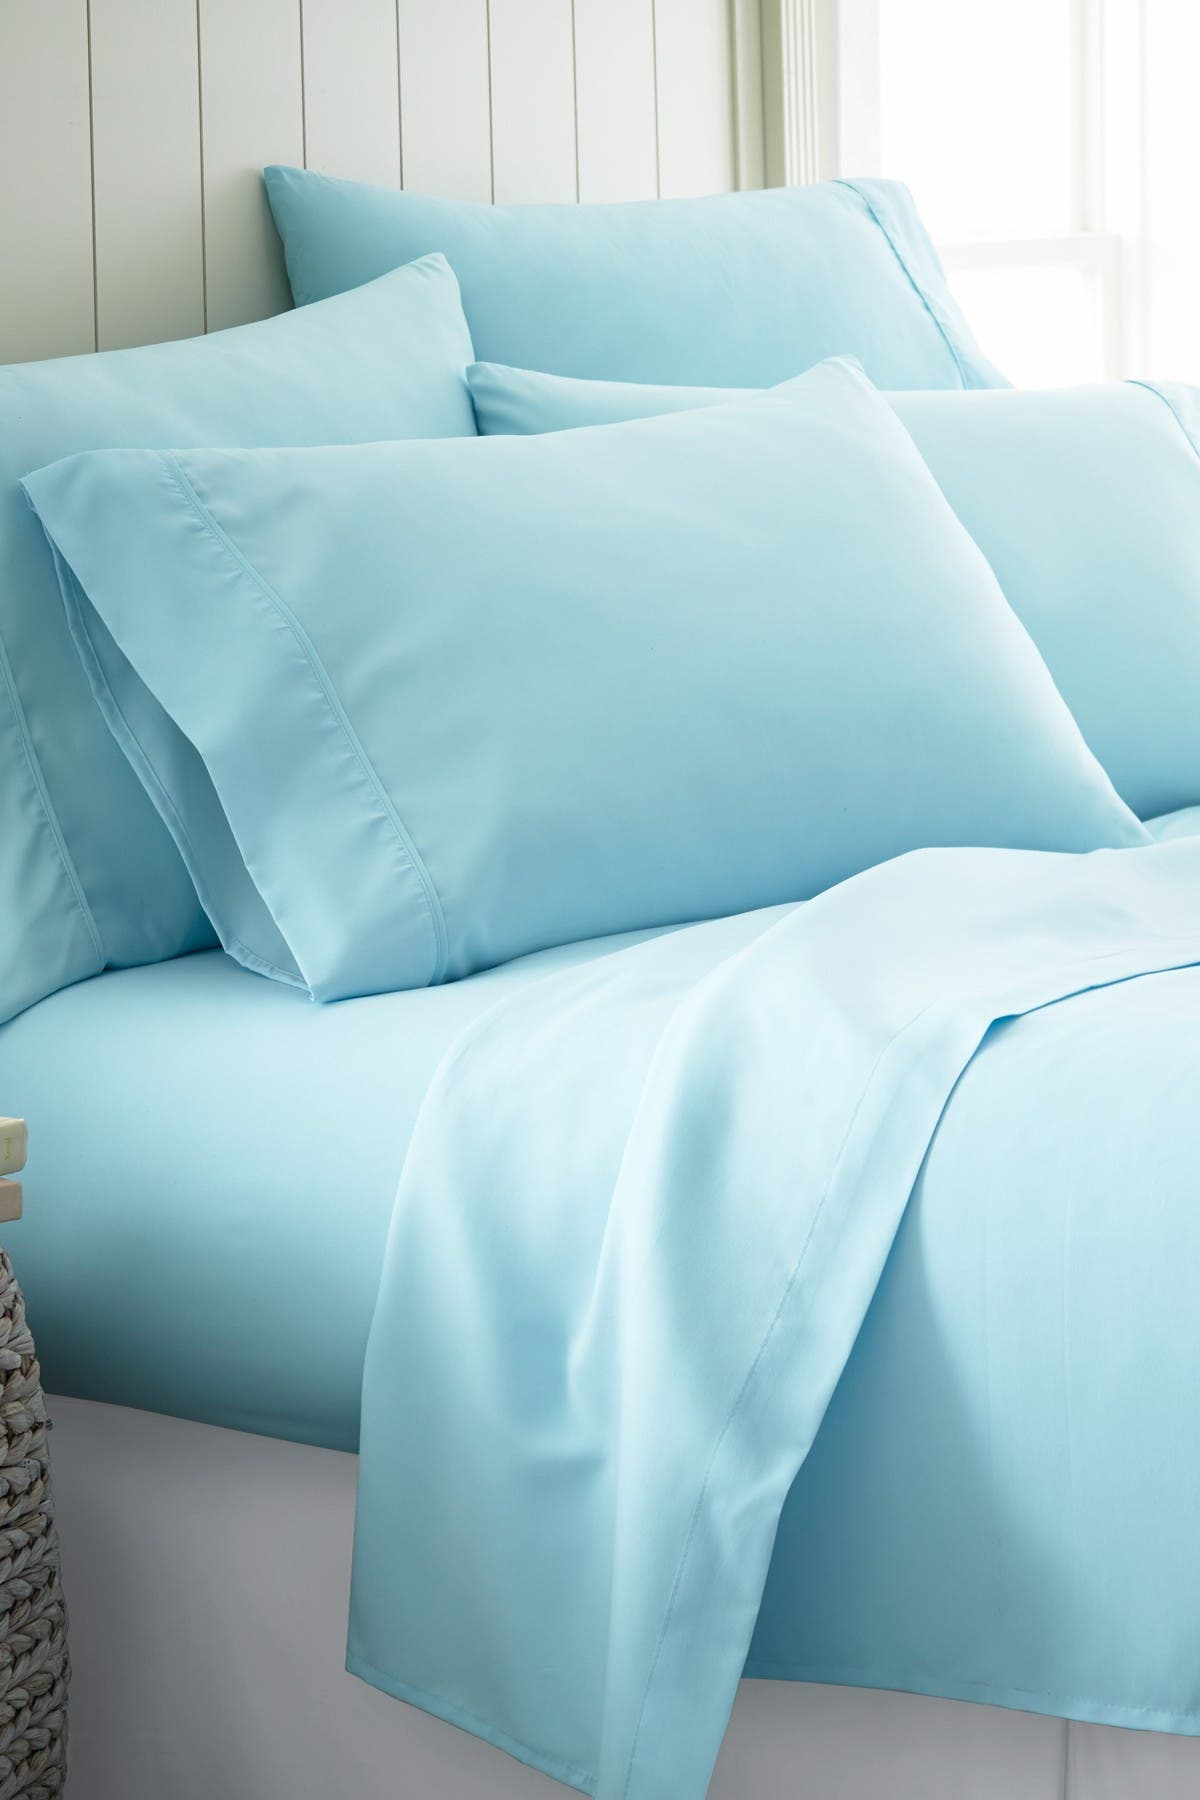 Image of IENJOY HOME Twin Hotel Collection Premium Ultra Soft 4-Piece Bed Sheet Set - Aqua